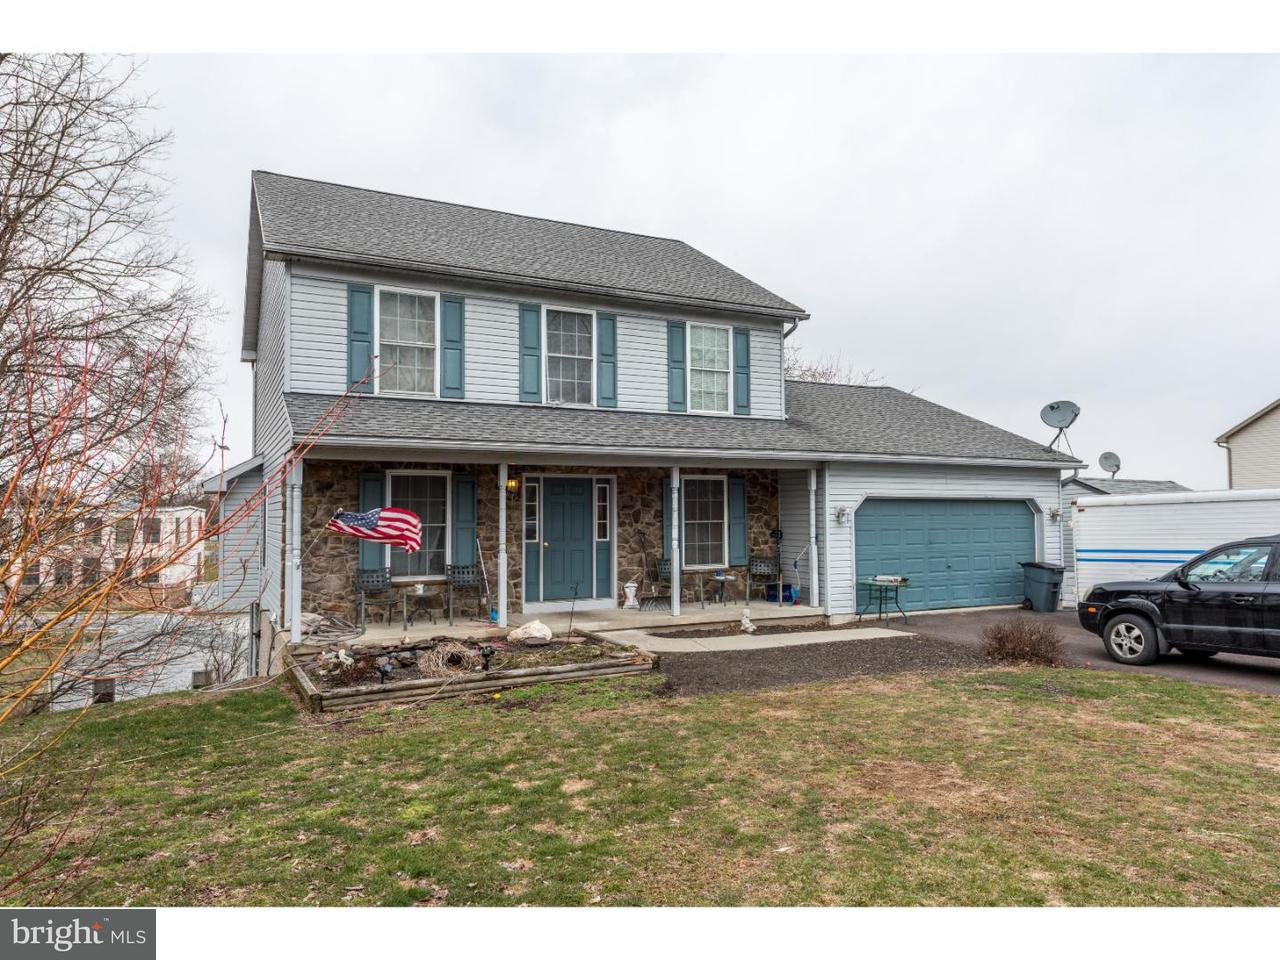 Single Family Home for Sale at 101 SELTZER Avenue Womelsdorf, Pennsylvania 19567 United States